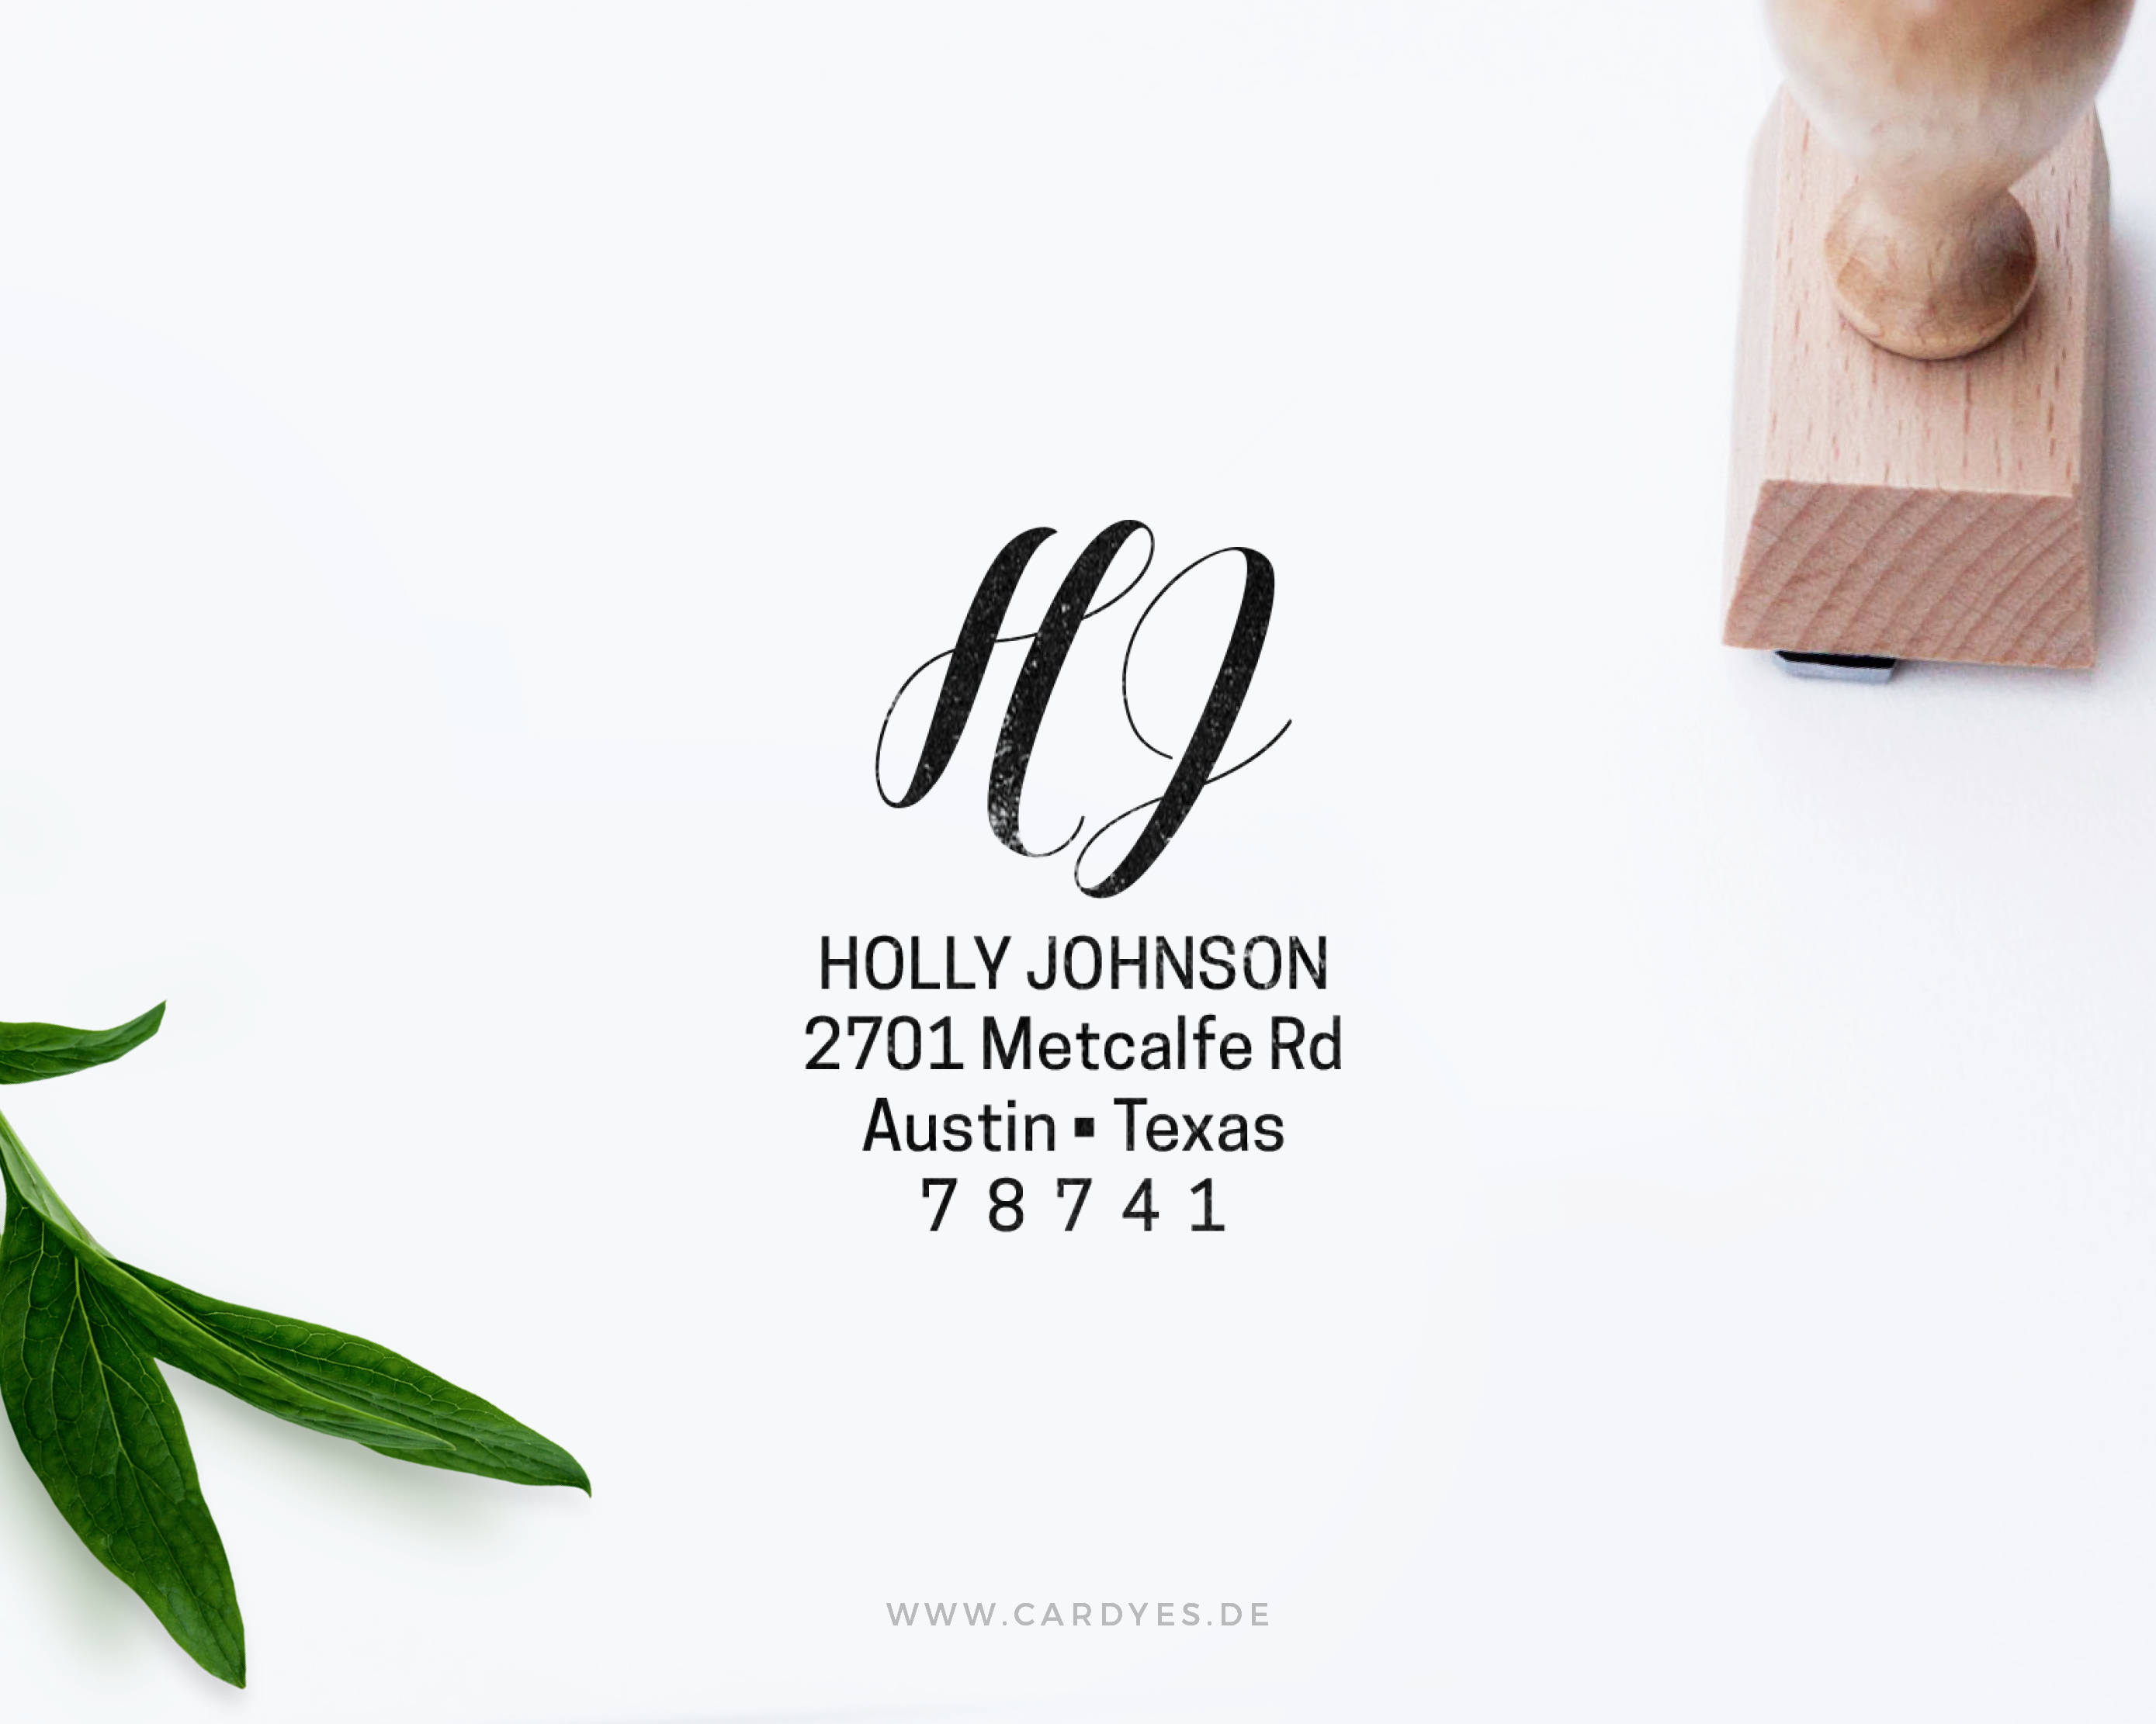 Custom return address stamp from Card Yes Shop